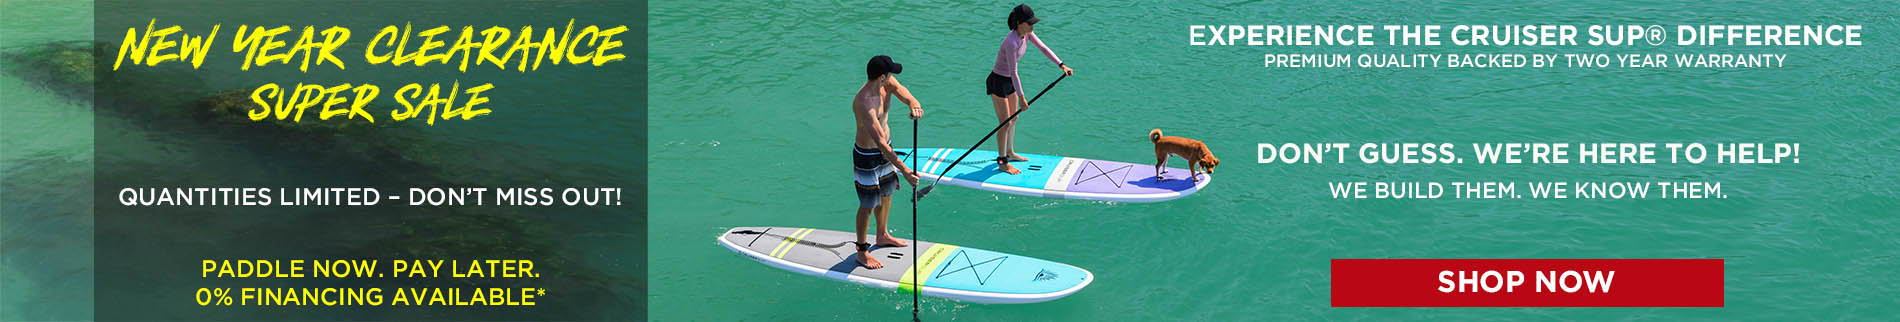 couple paddle boarding with cute dog